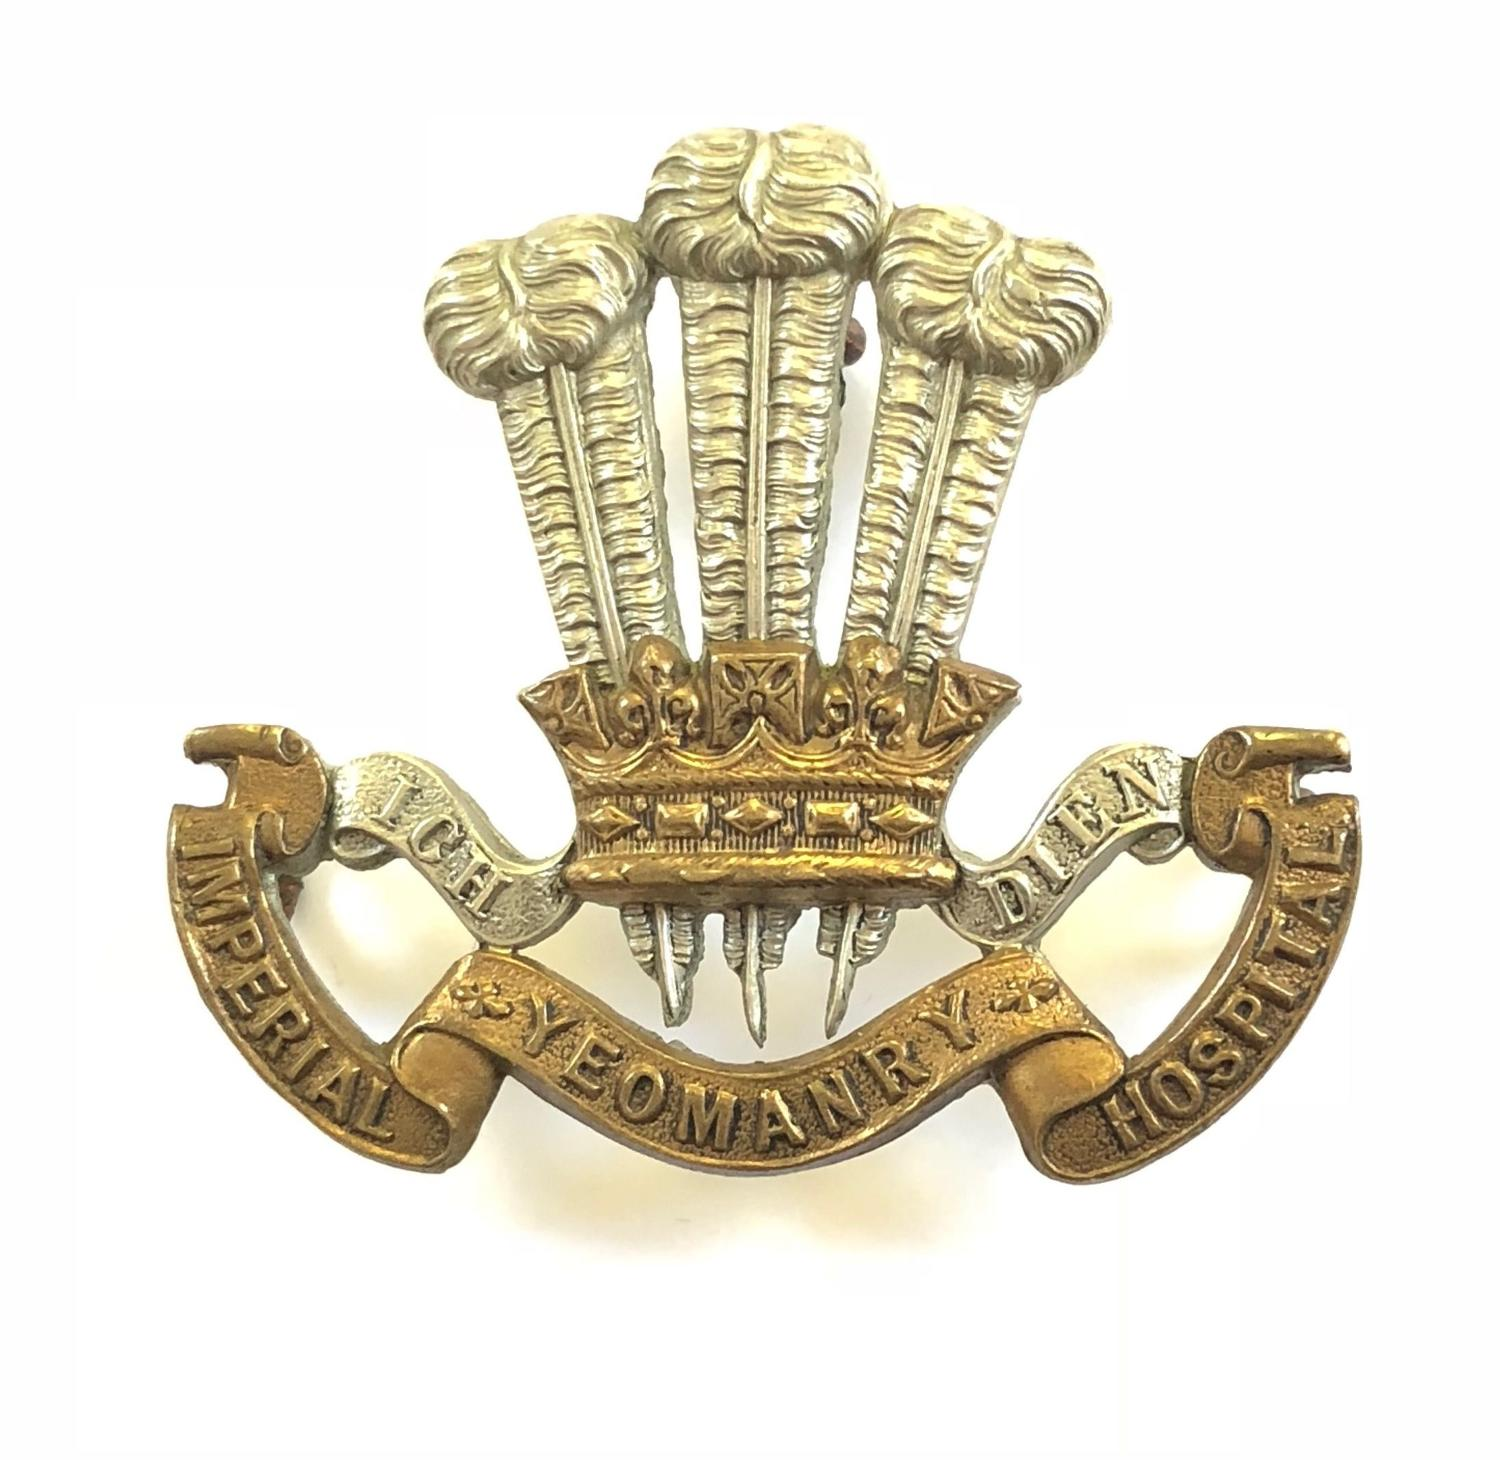 Imperial Yeomanry Hospital Boer War bi-metal slouch hat badge